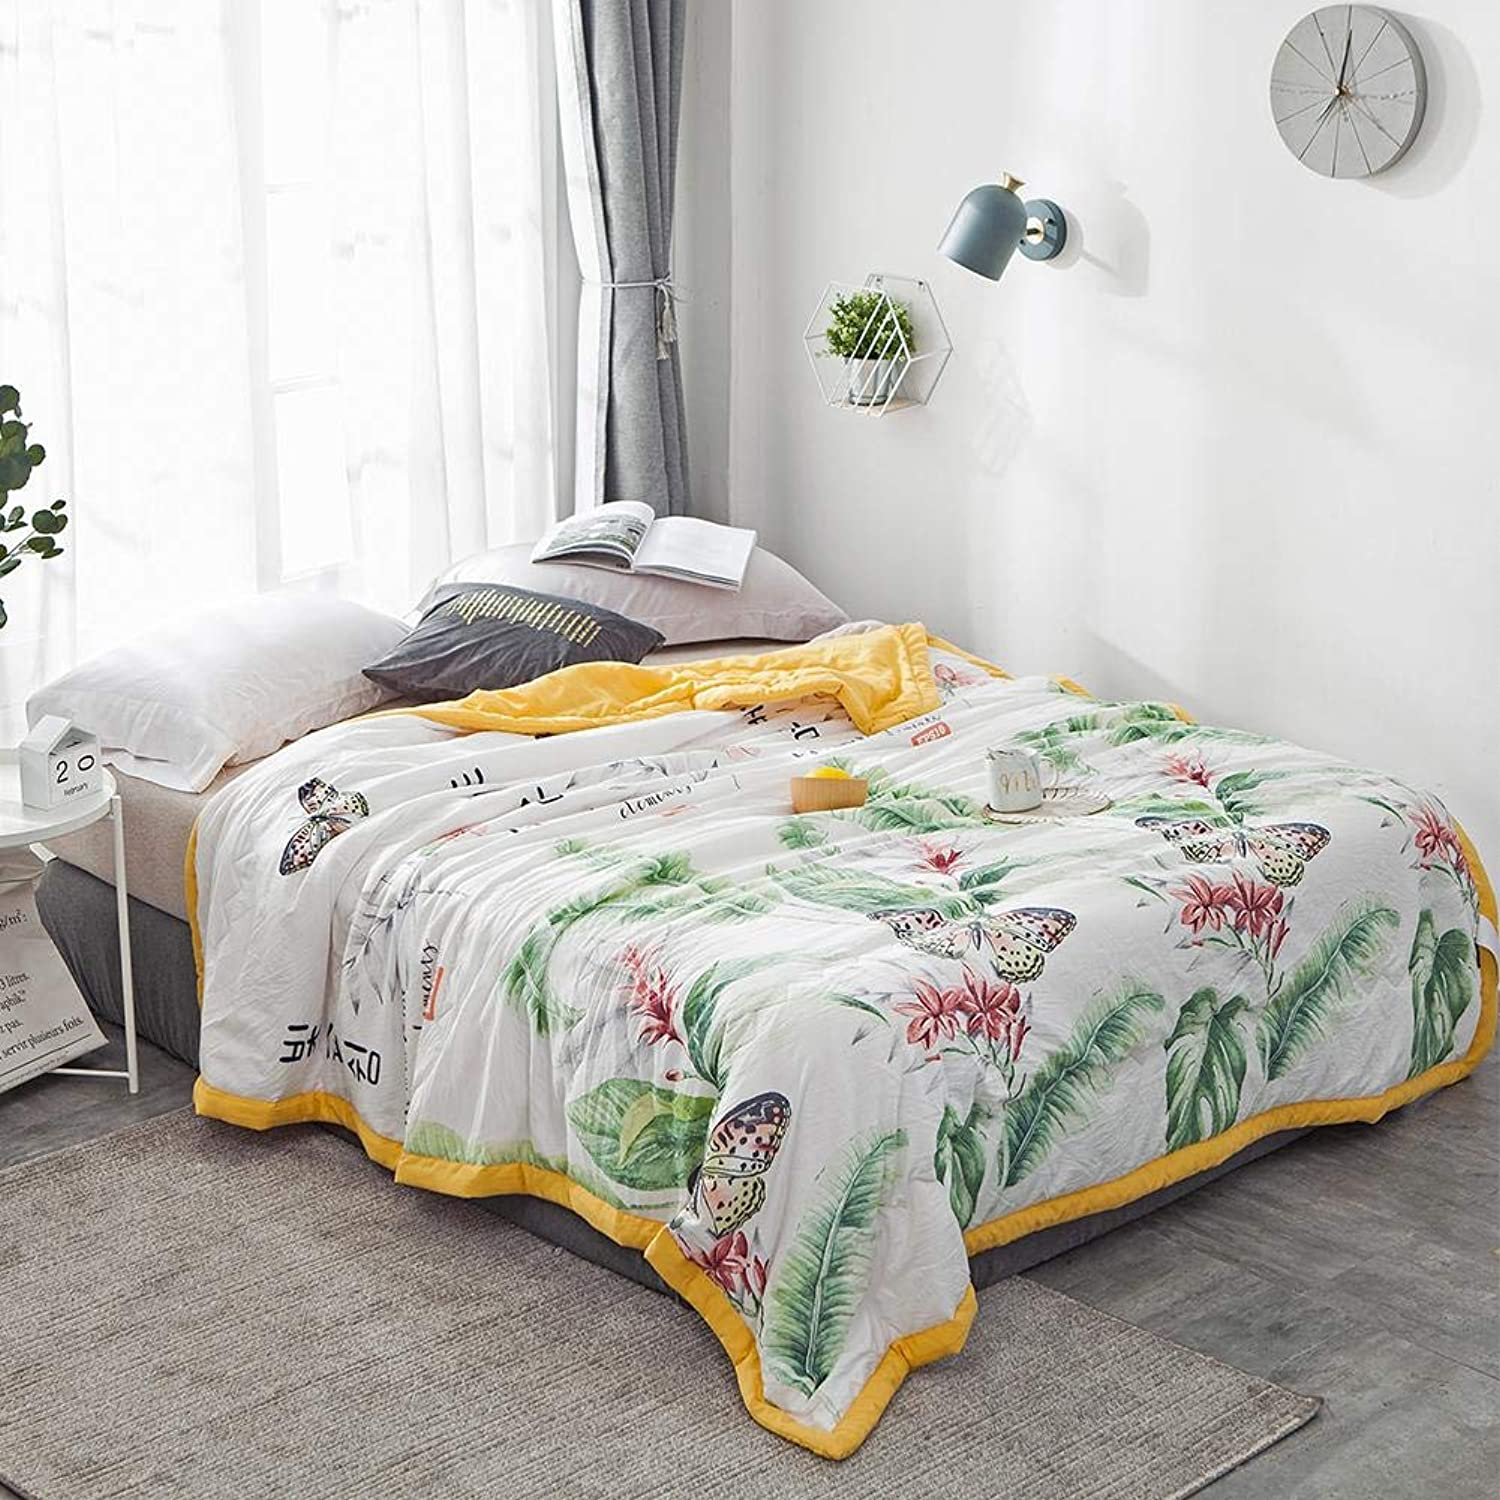 Air Conditioner Quilt, Washable Cotton Summer Cool Quilt Cartoon Printing Cute Comfortable Light Blanket for Baby Teens and Adults